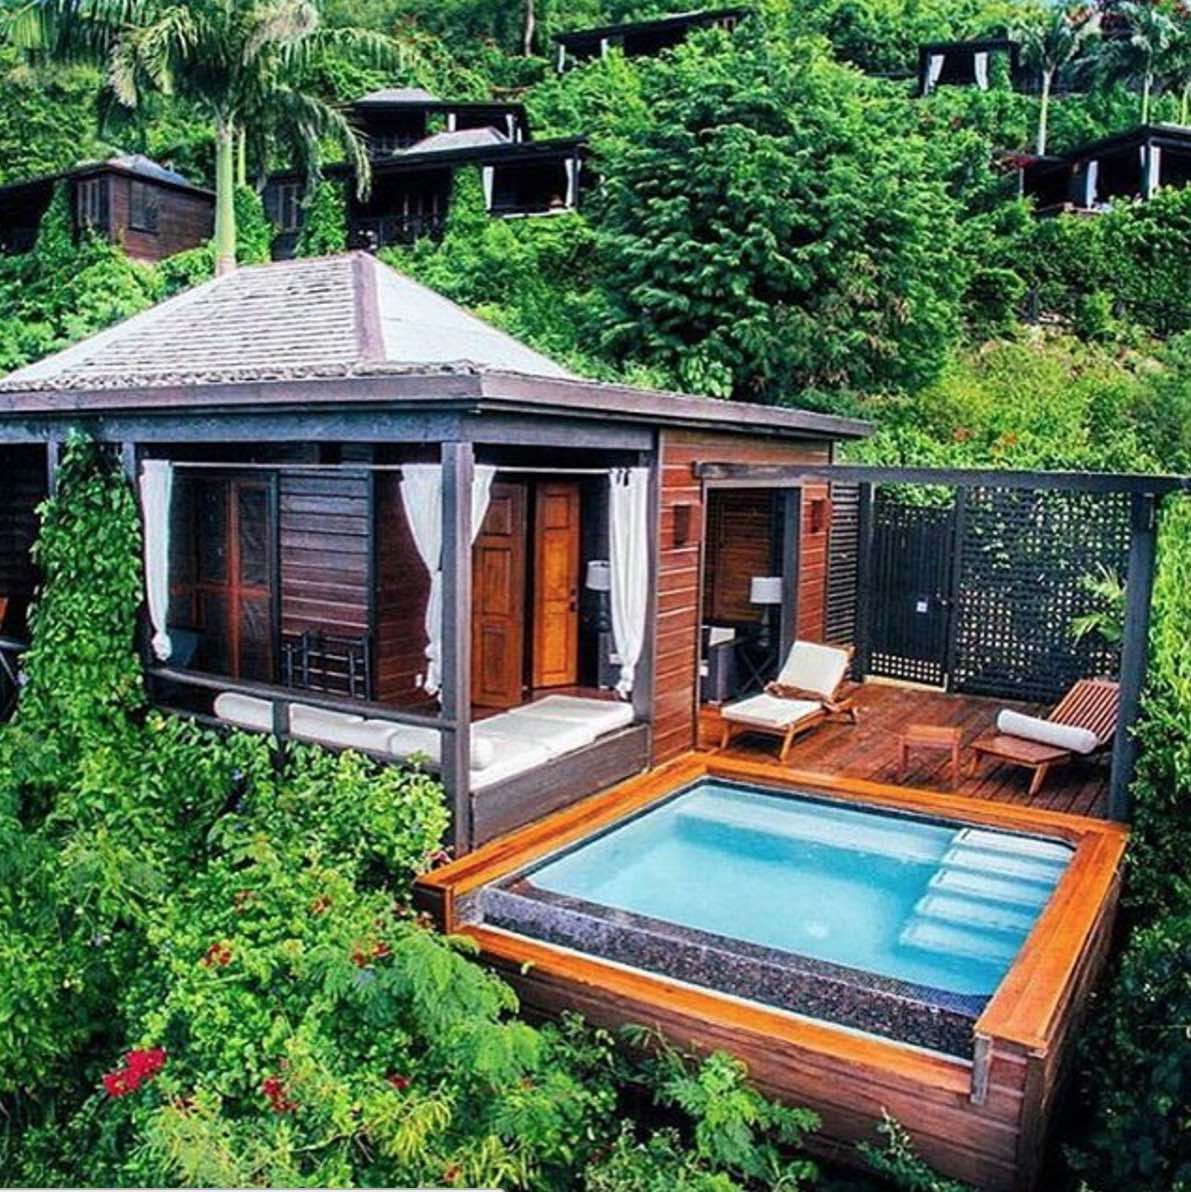 Sandy Beach Bedroom Set 10 All Inclusive Resorts To Consider For An Unforgettable